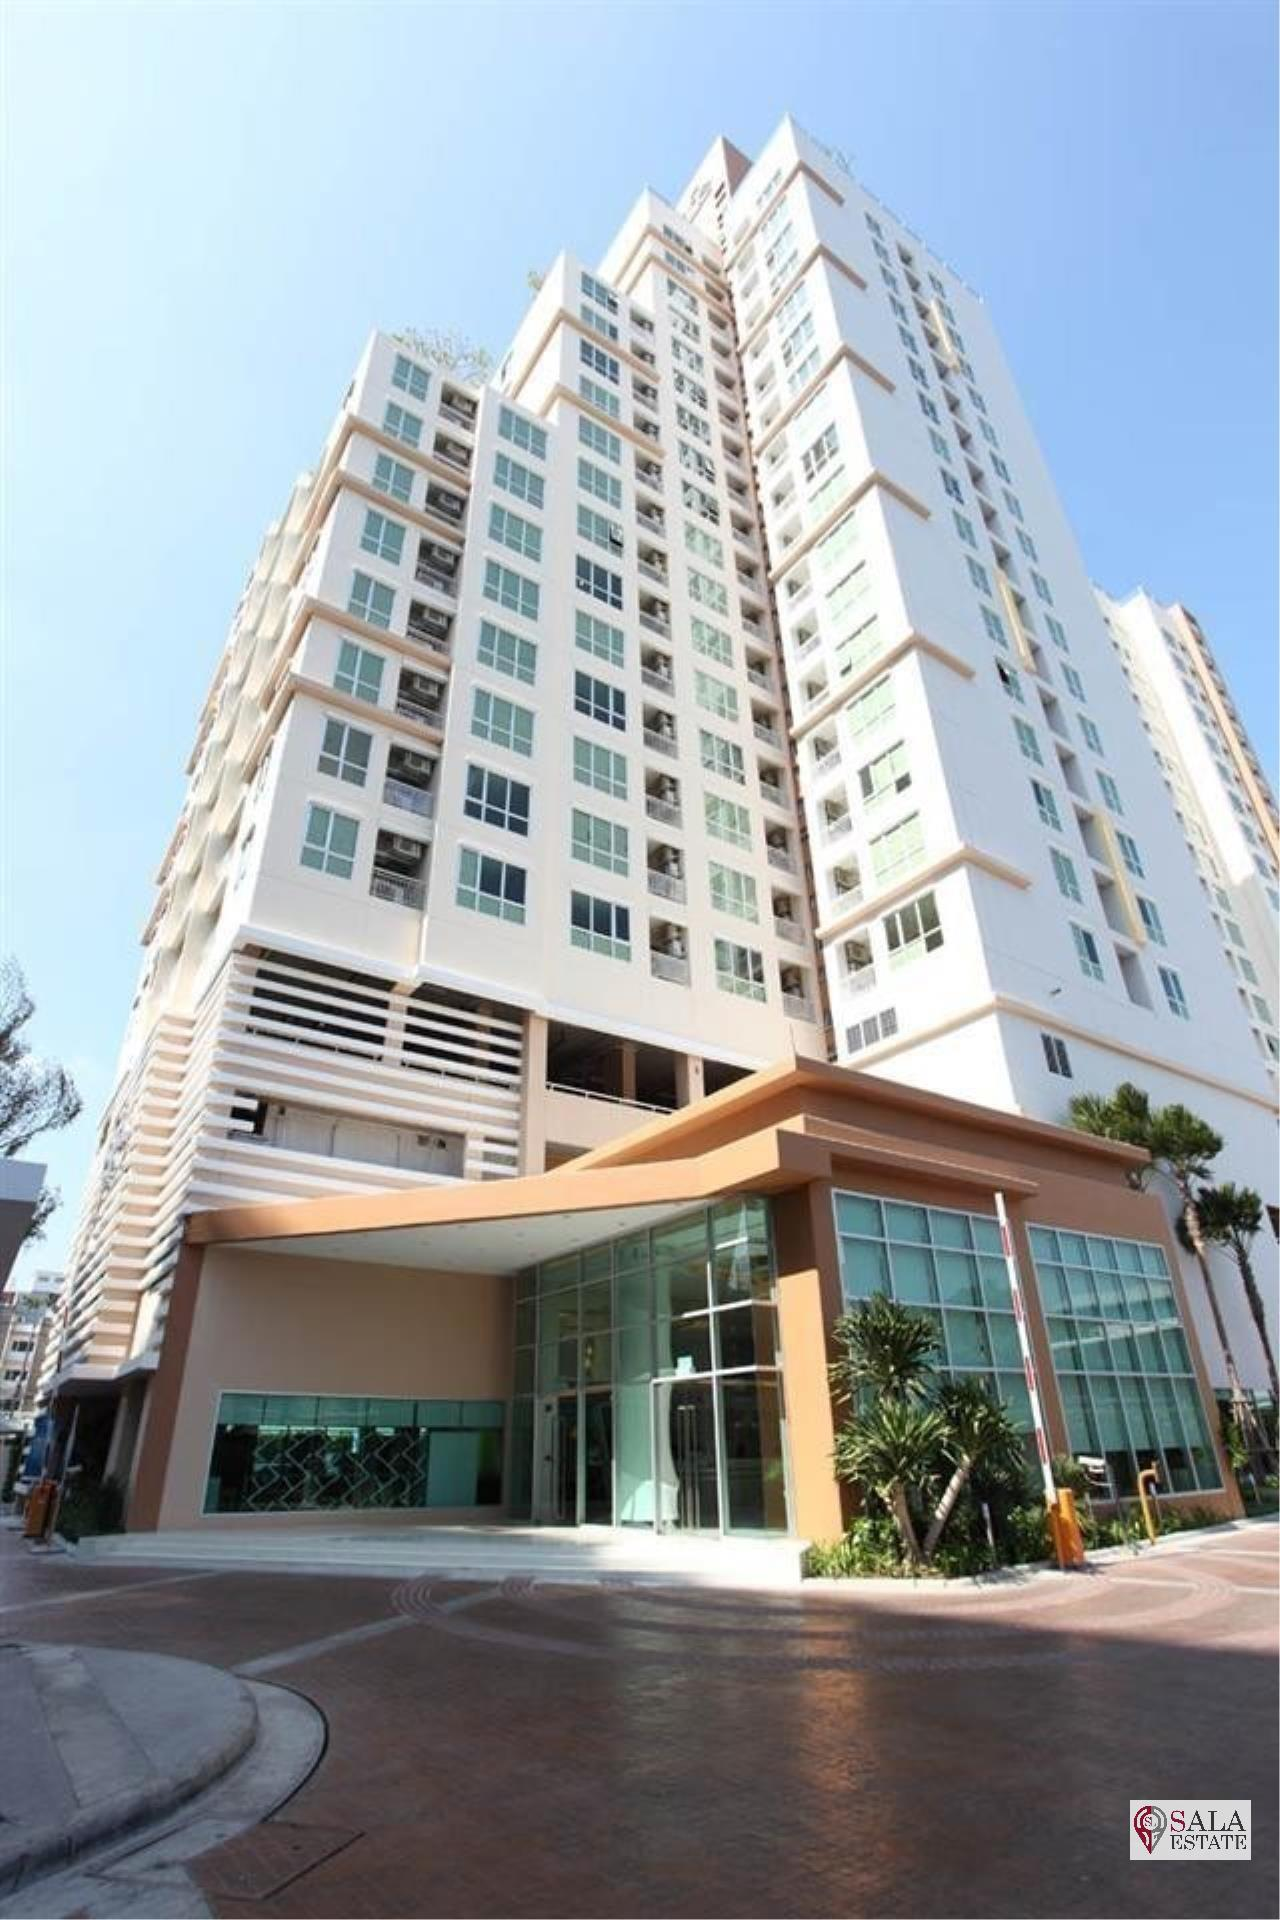 SALA ESTATE Agency's (FOR RENT) LIFE@RATCHADA HUAYKHWANG – MRT HUAI KHWANG,1BEDROOM 1 BATHROOM, FULLY FURNISHED 1